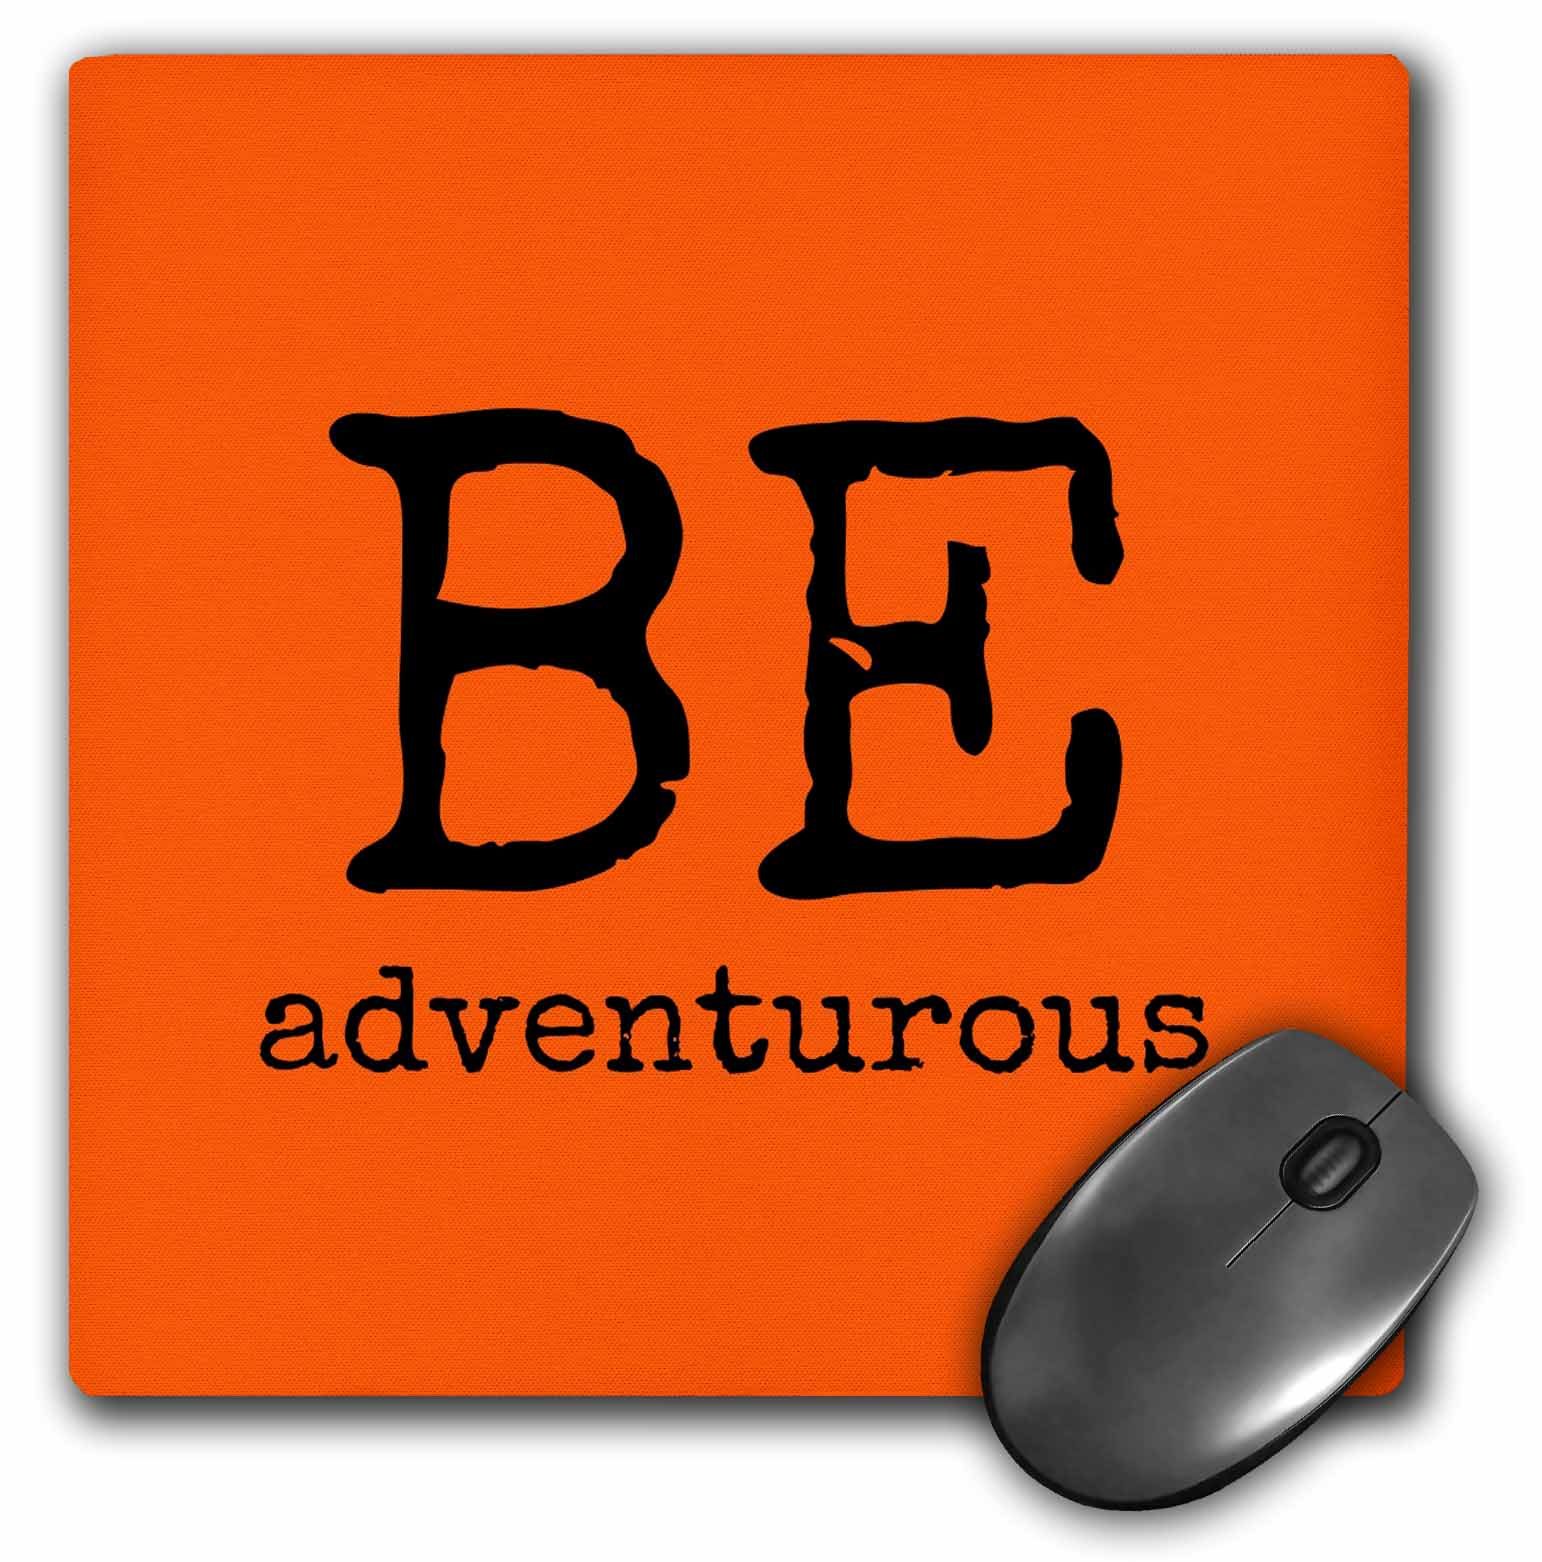 3dRose - Xander inspirational quotes - BE adventurous, orange background - Mouse Pads